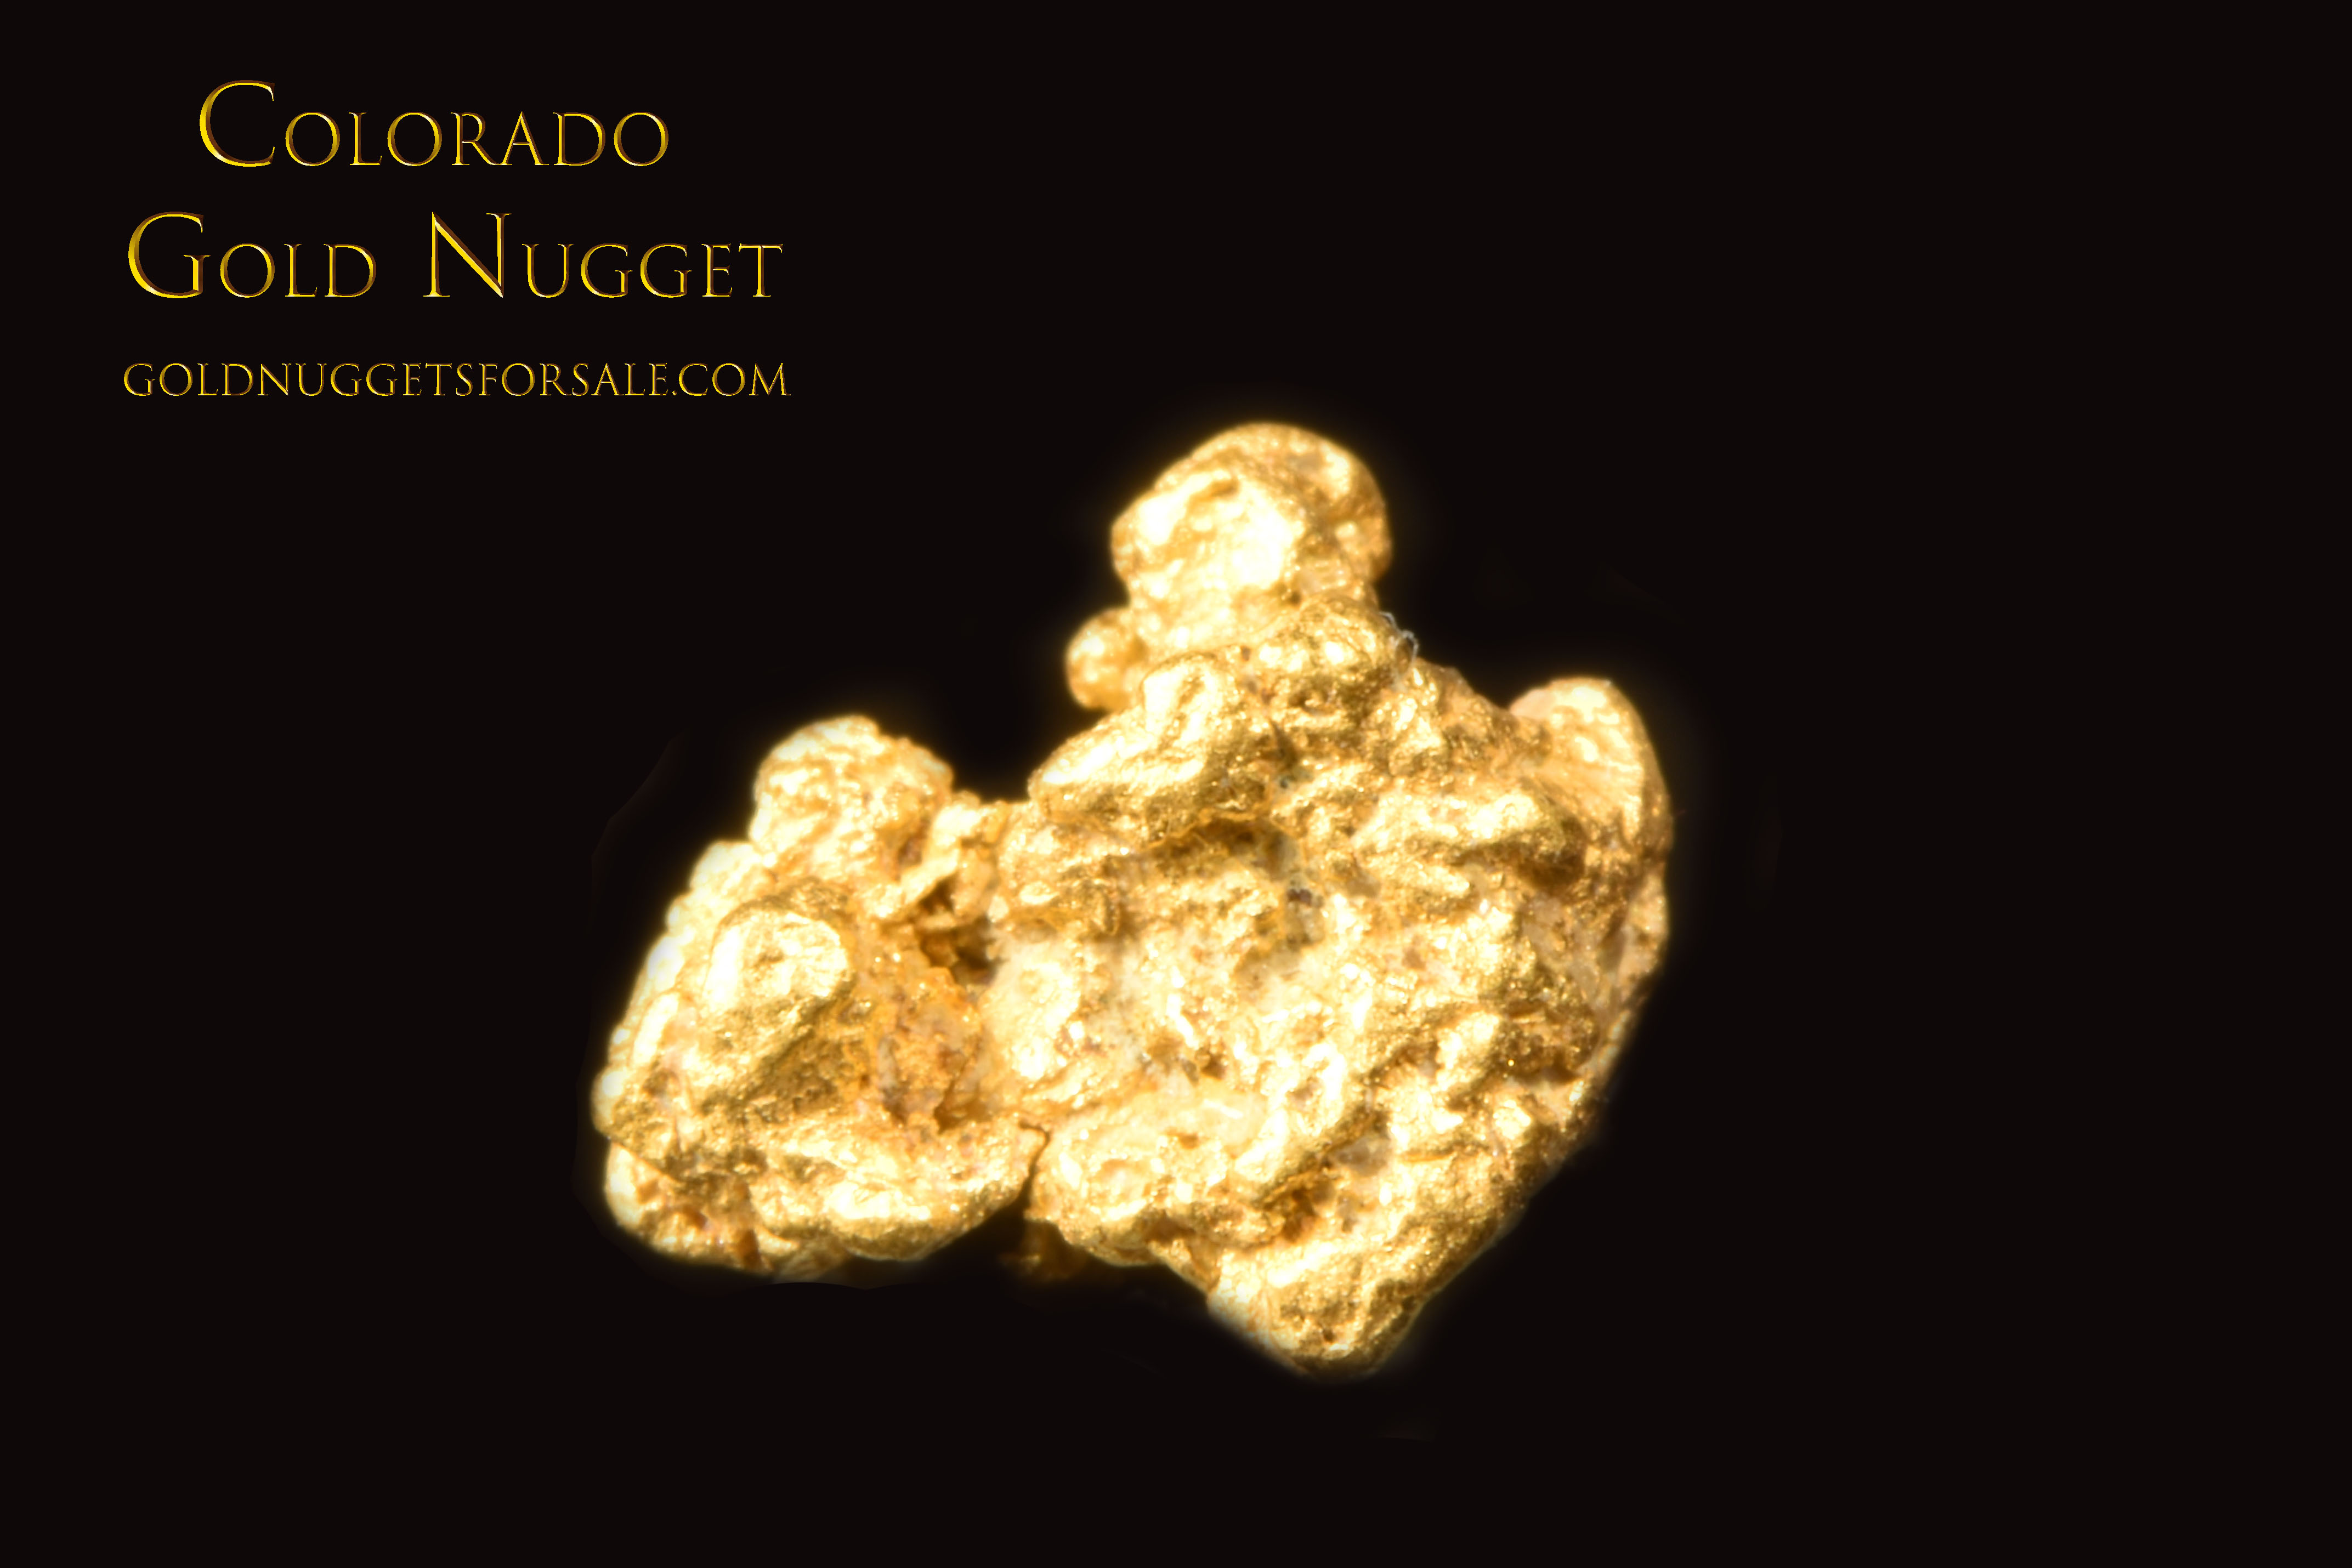 Great Price on this Raw Colorado Gold Nugget